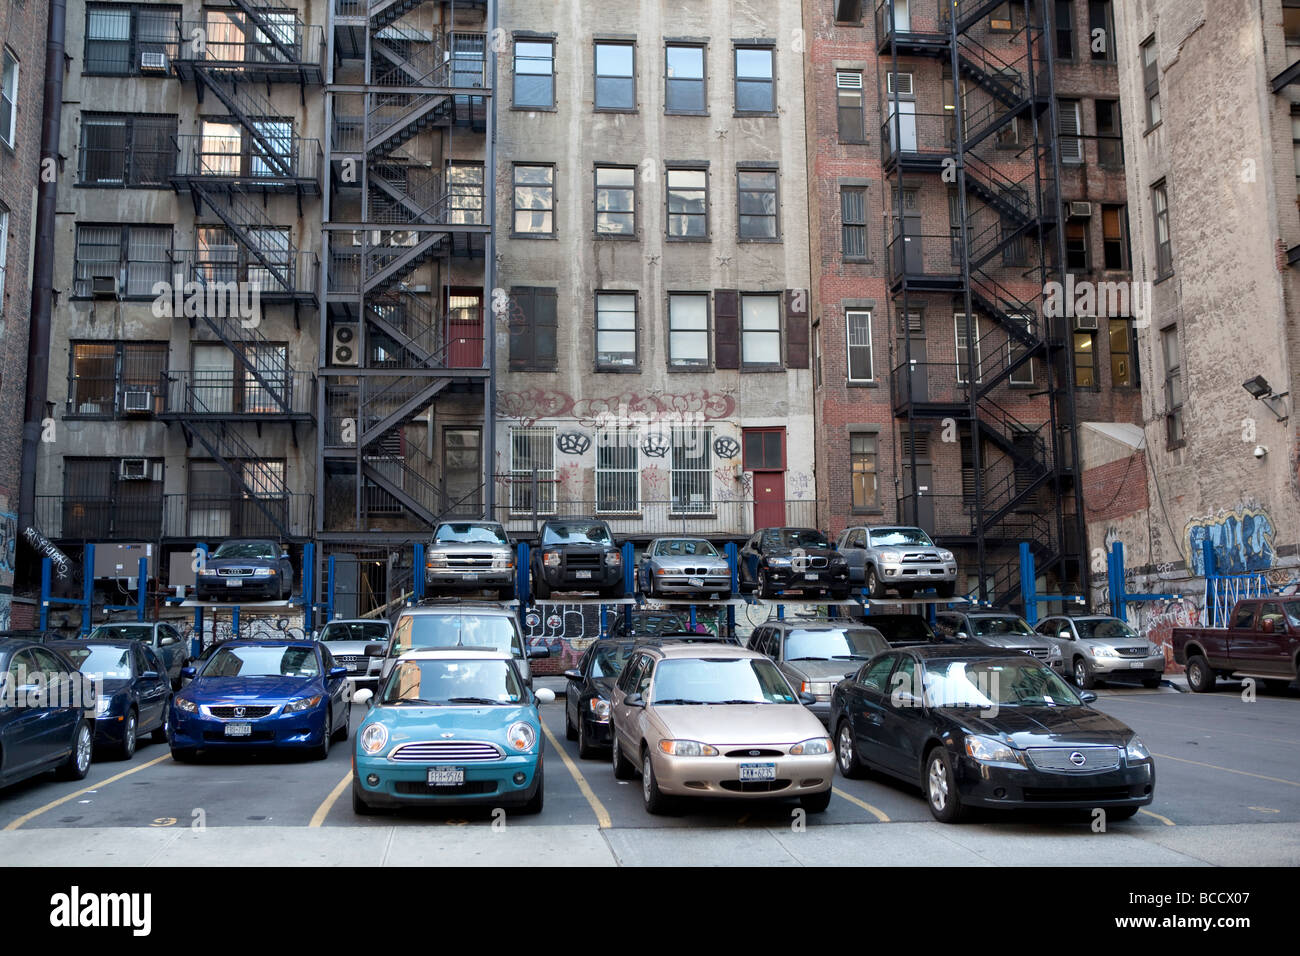 Parking lot in NYC - Stock Image